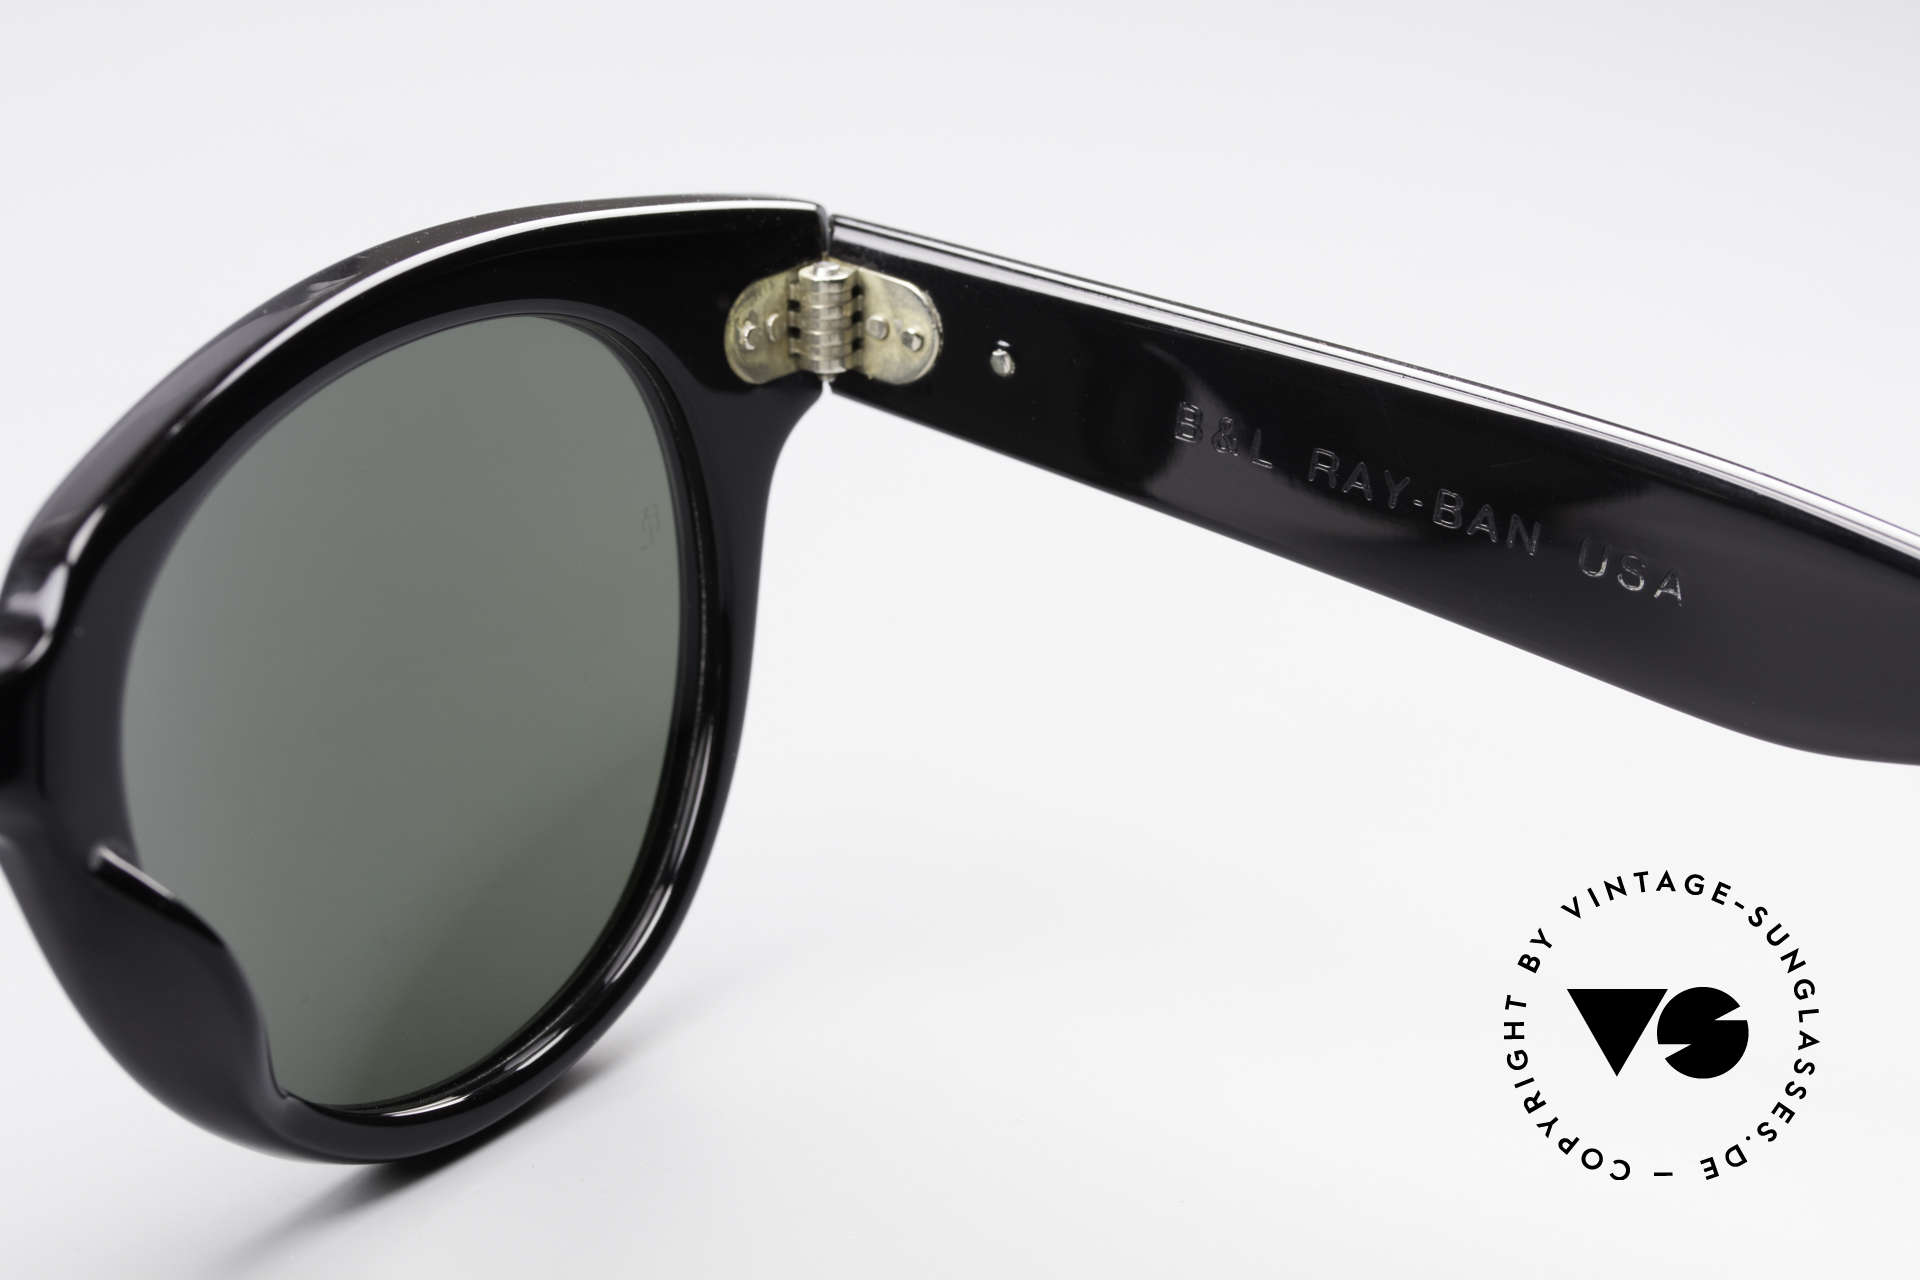 Ray Ban Orion Old Bausch&Lomb USA Frame, Size: large, Made for Men and Women